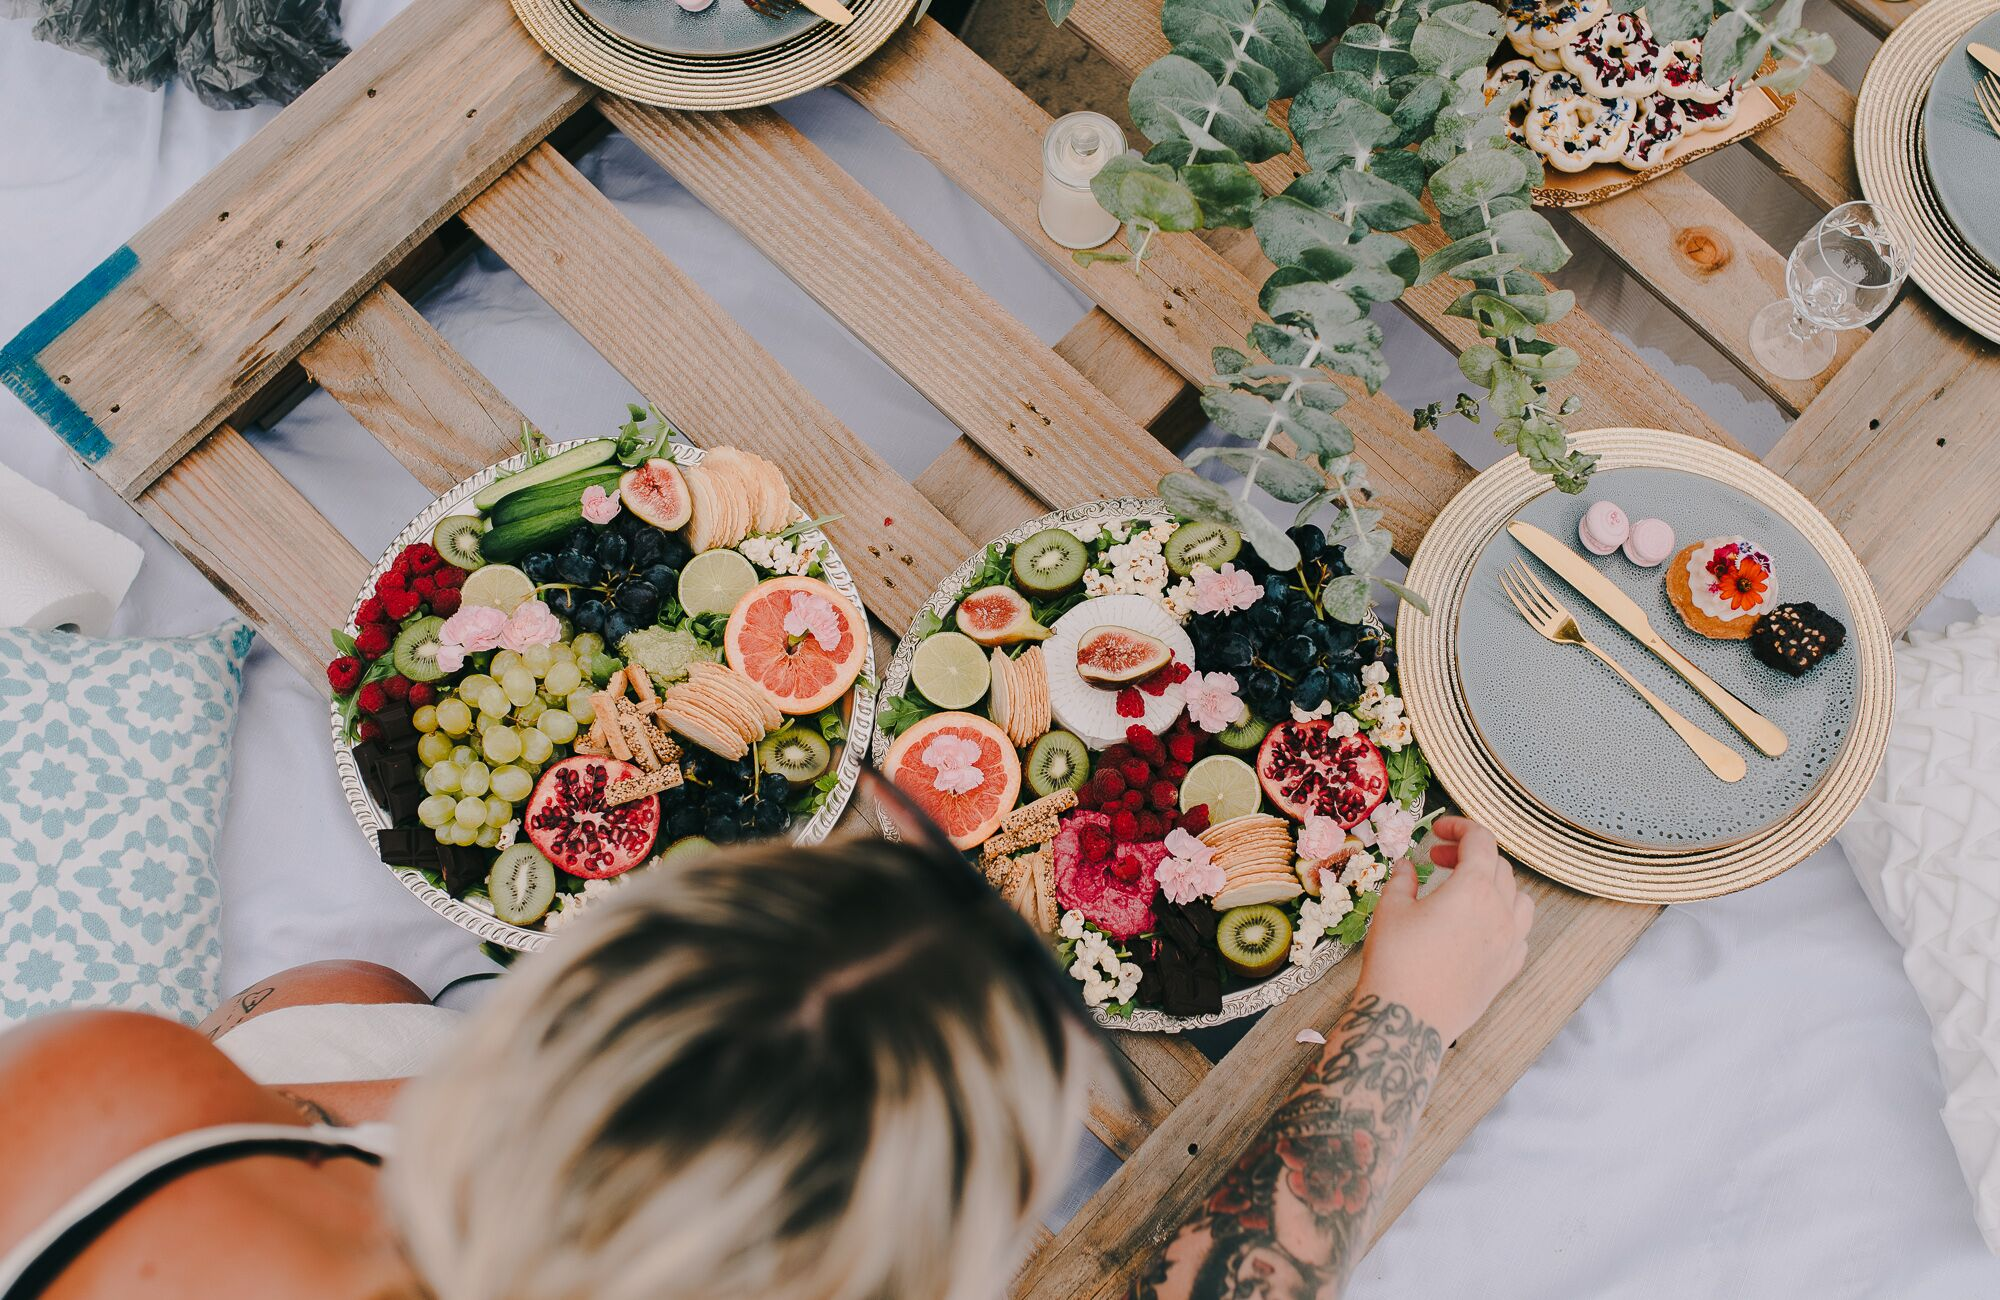 Who is Scheer Delight Platters? - Hey, I'm Michelle, and I love food! After relocating to the Gold Coast from Adelaide, I found myself creating colourful platters and picnics to enjoy with my girlfriends by the beach most weekends. So here I am, creating them for you, and others.